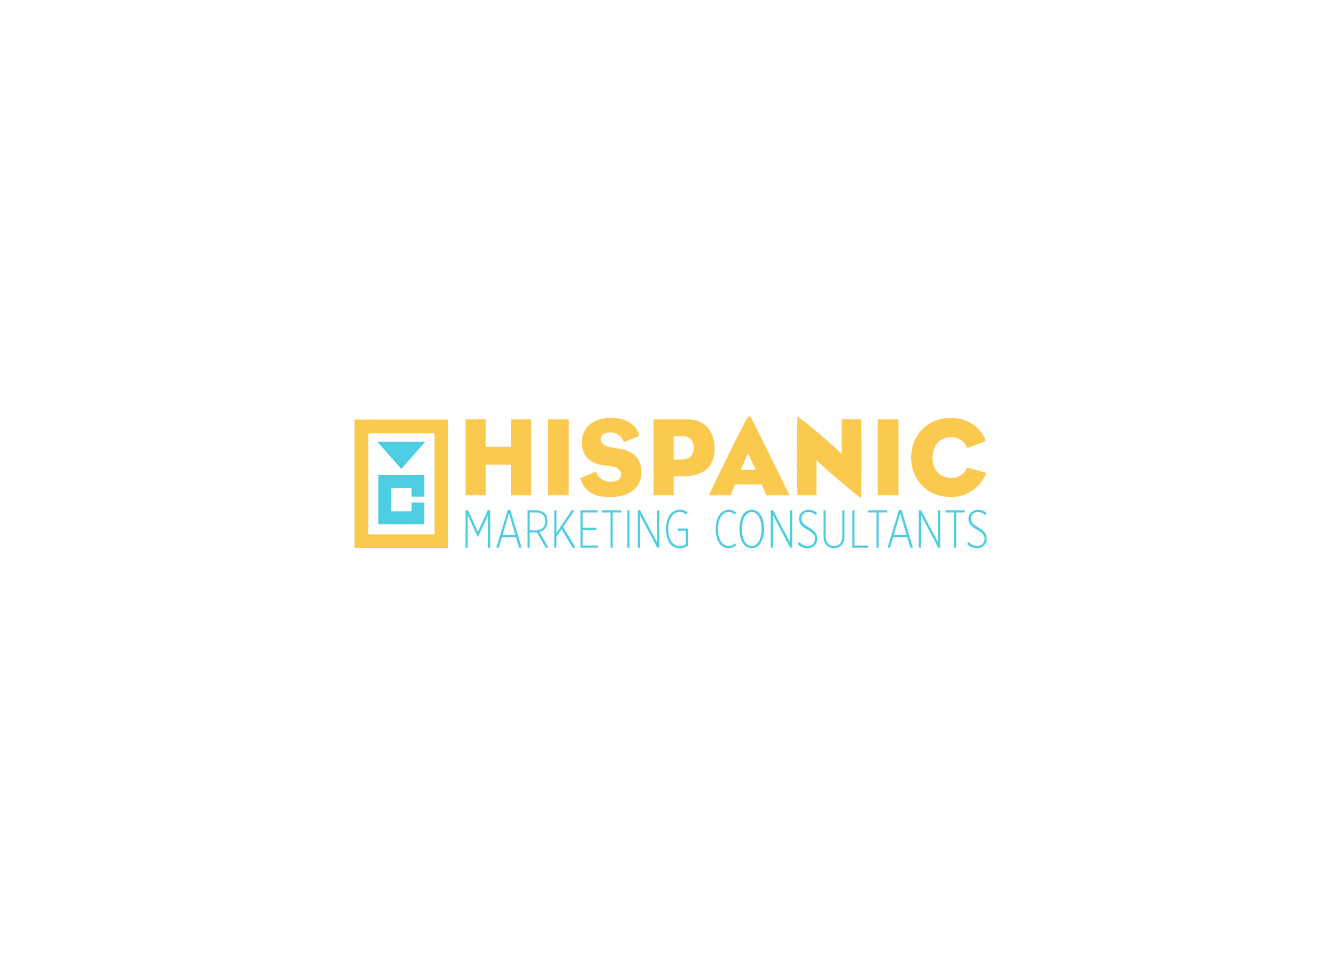 Hispanic Marketing Consultants Logo